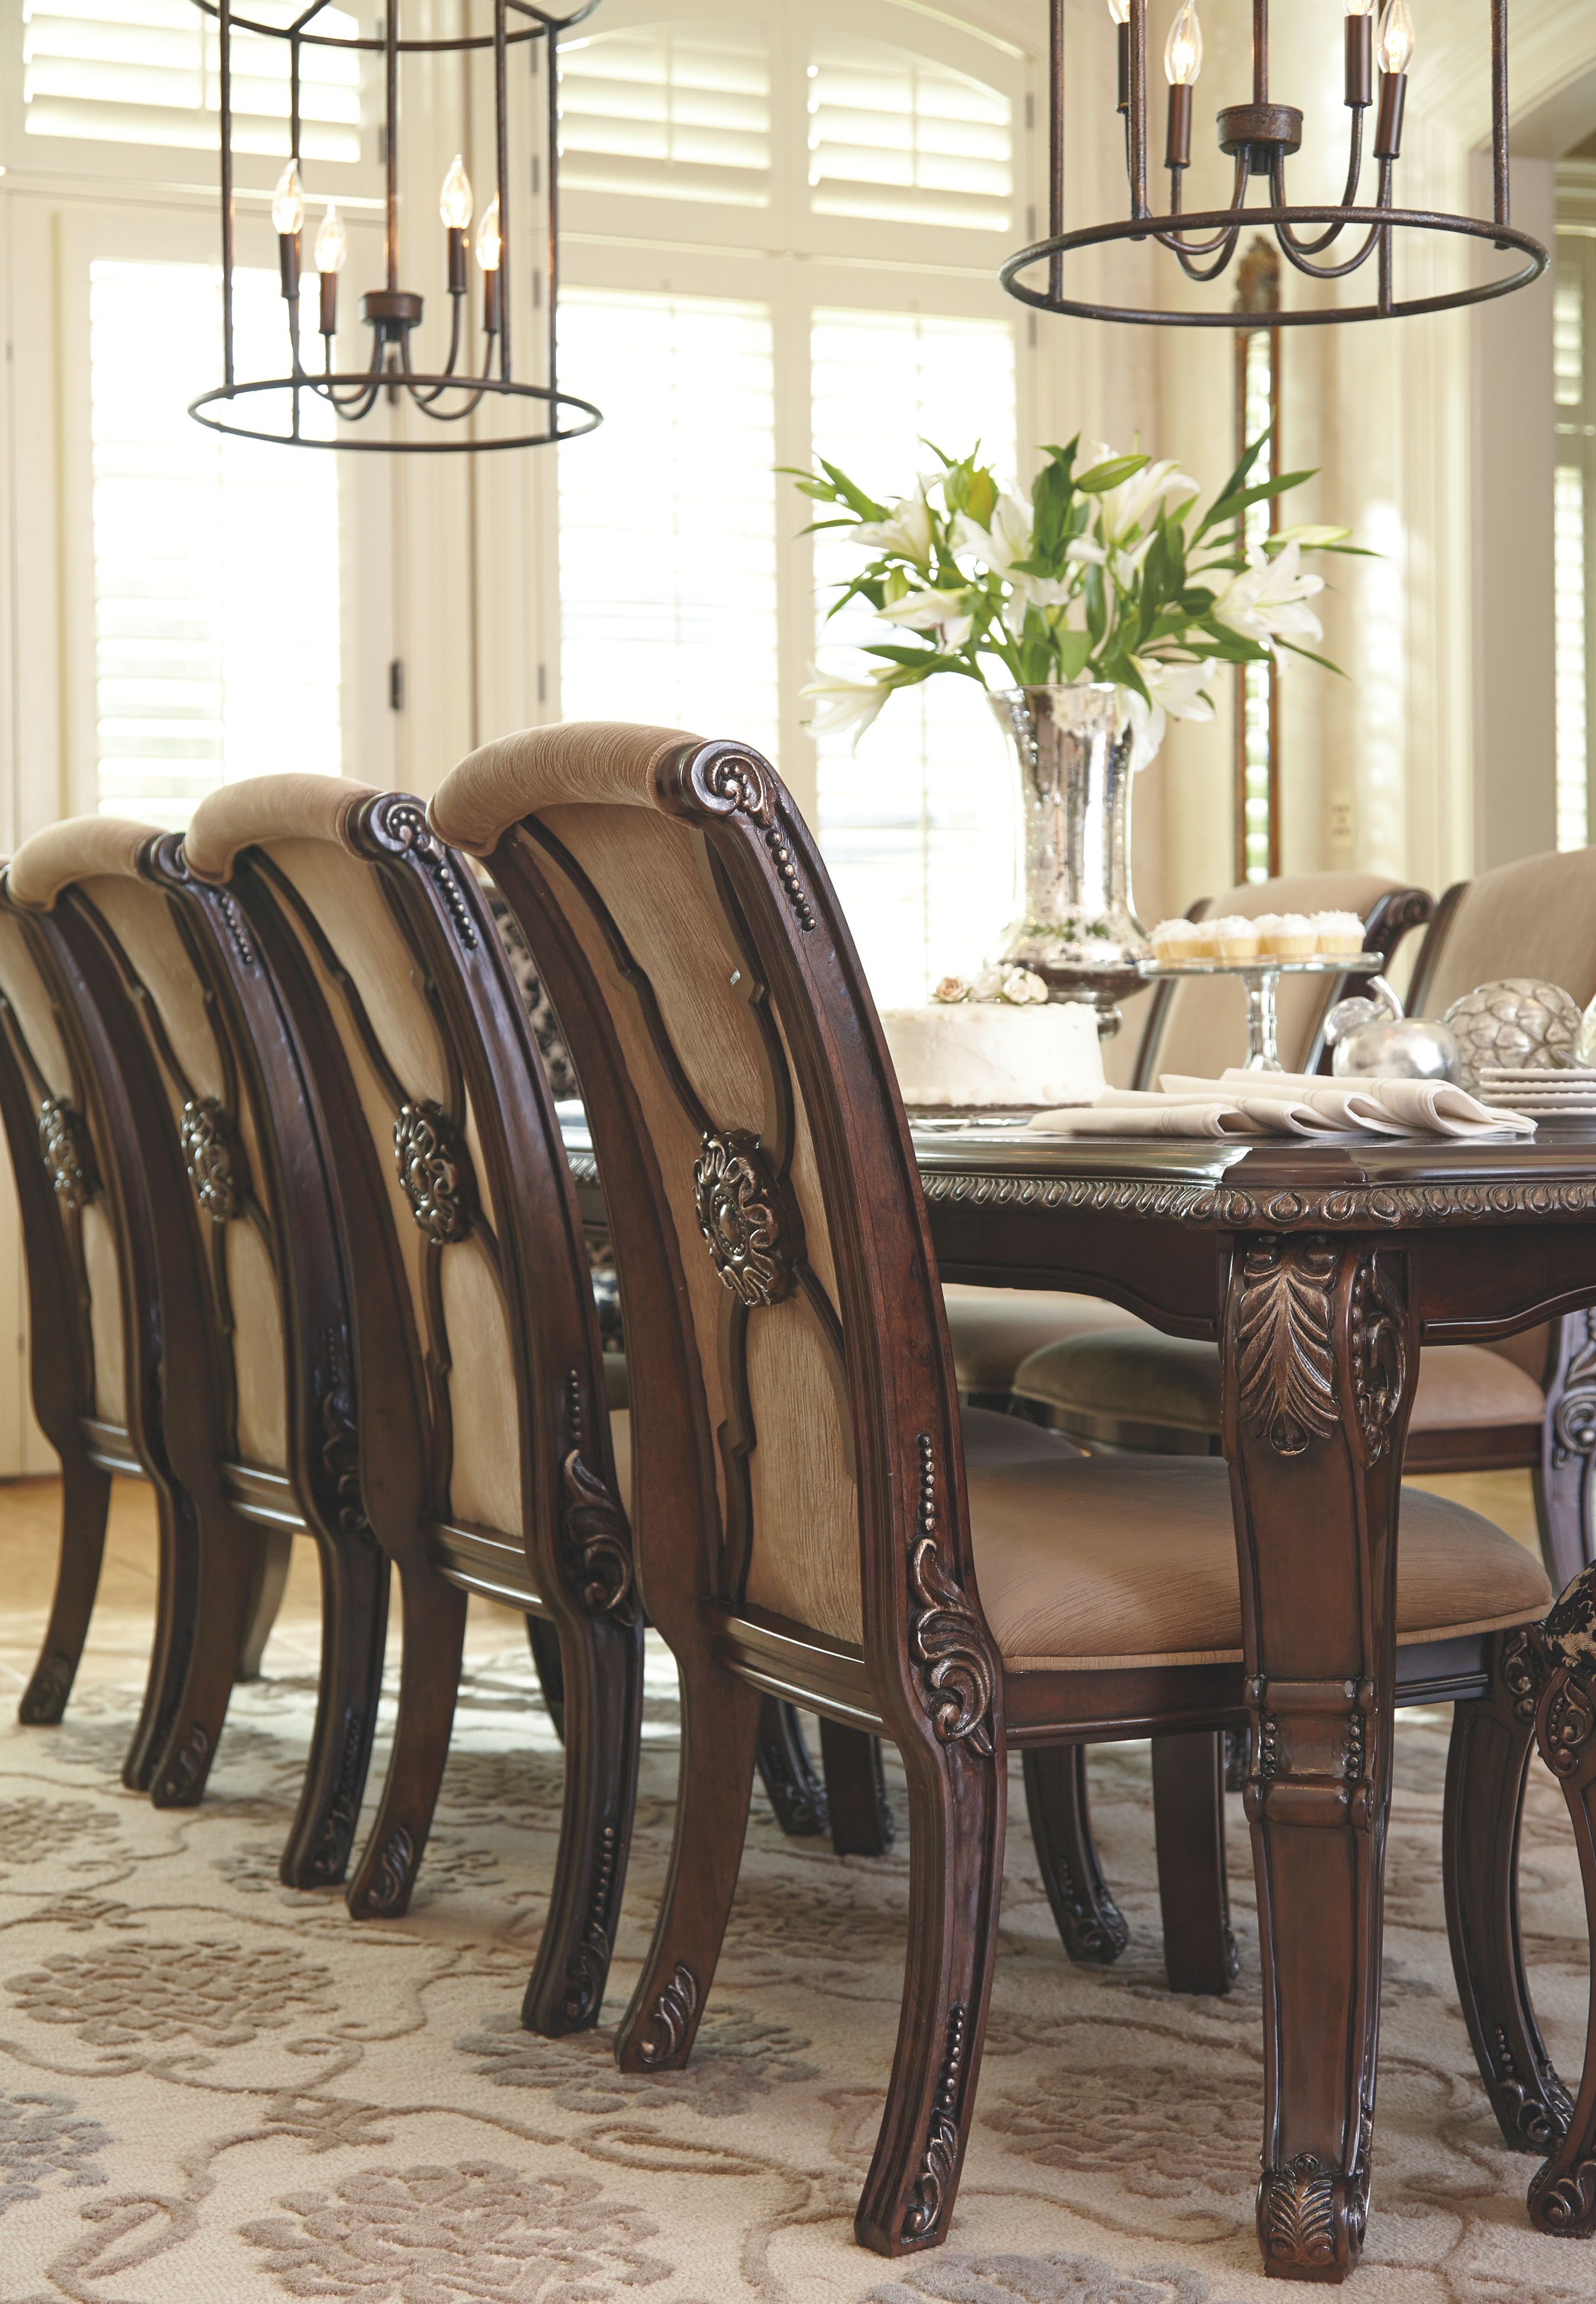 Remarkable Valraven Dining Room Chair Set Of 2 Brown In 2019 Gamerscity Chair Design For Home Gamerscityorg